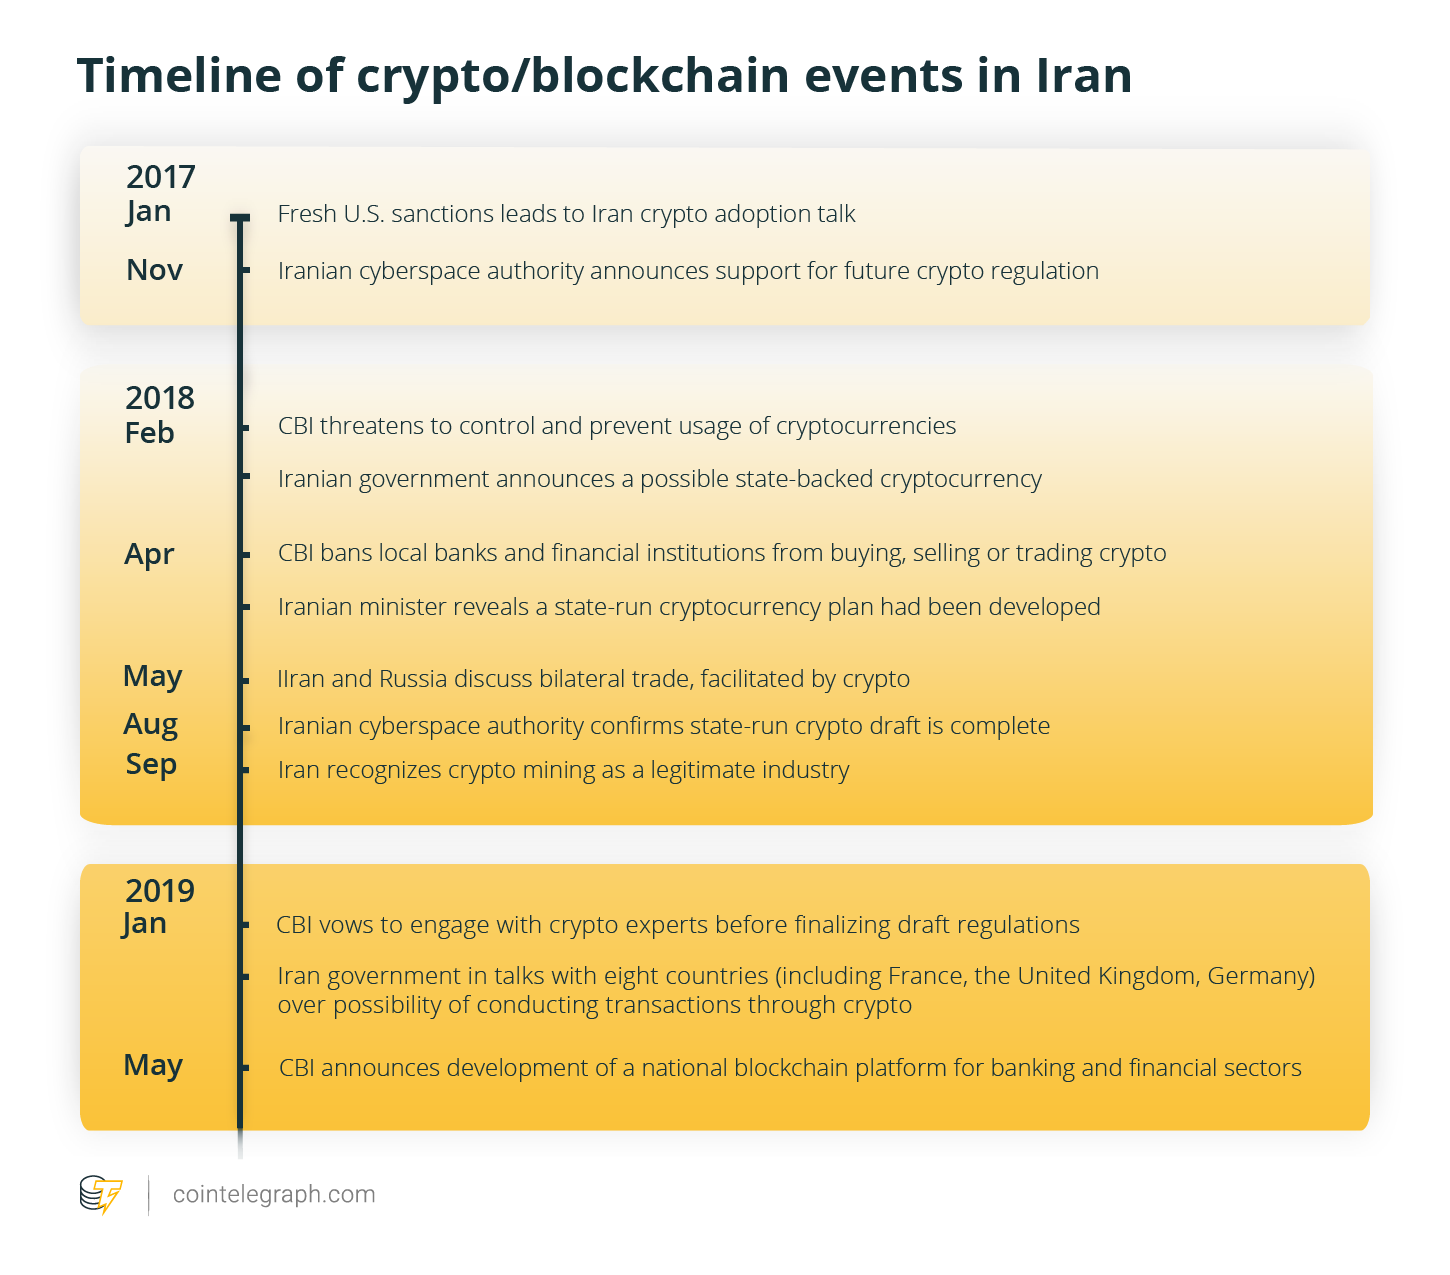 Timeline of crypto/blockchain events in Iran